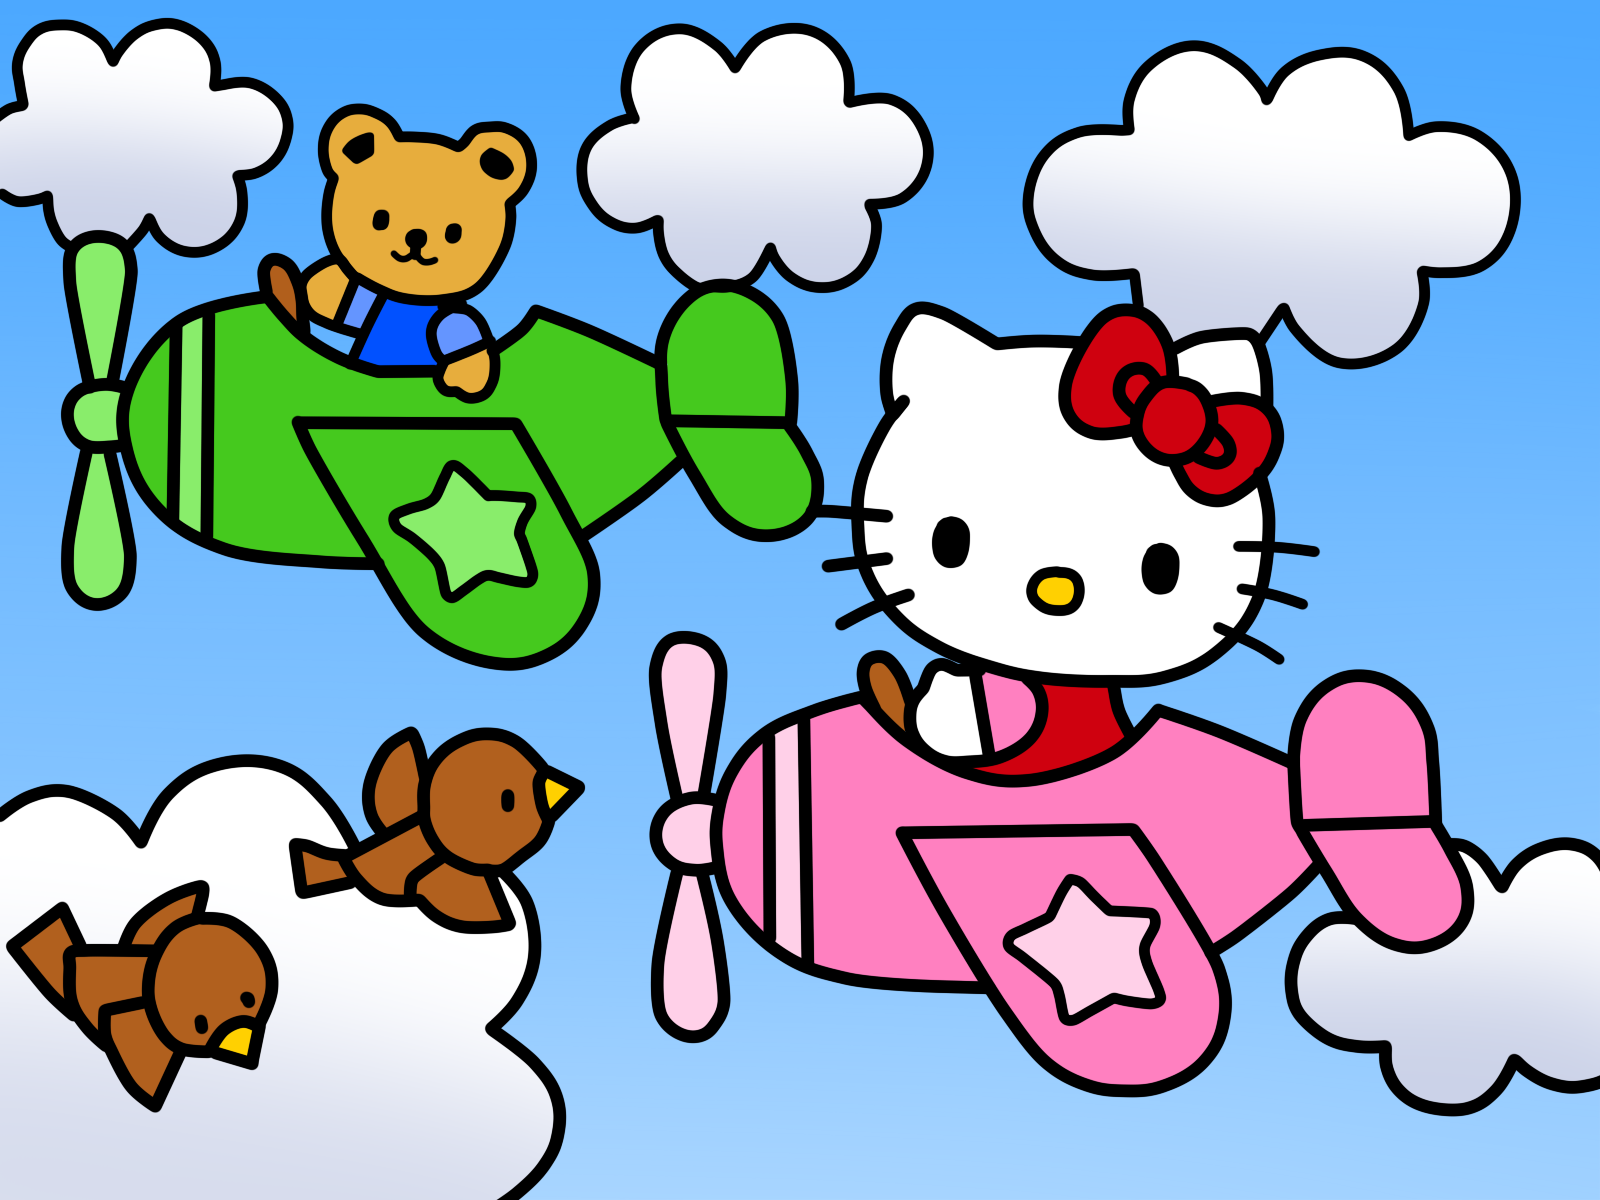 hello kitty on a airplane coloring book by kittykun123 - Airplane Coloring Book